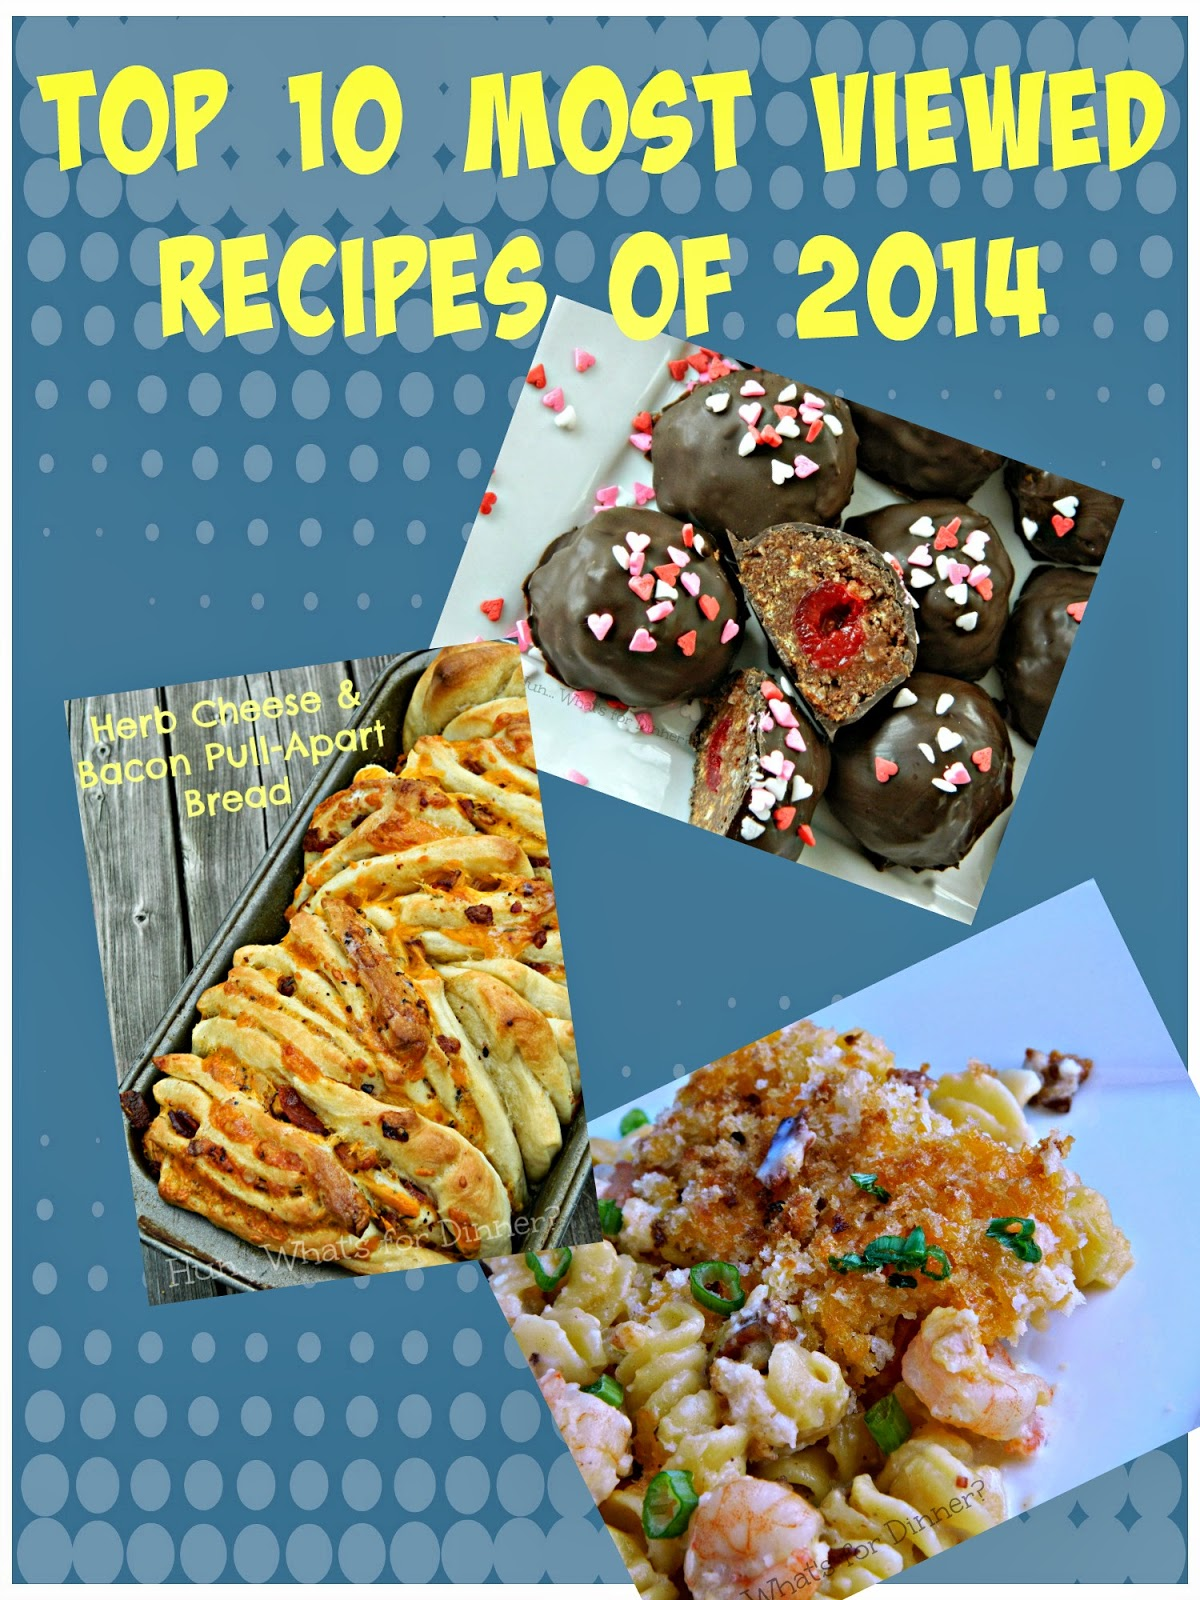 Top 10 Most Viewed Recipes of 2014- Hun... What's for Dinner?